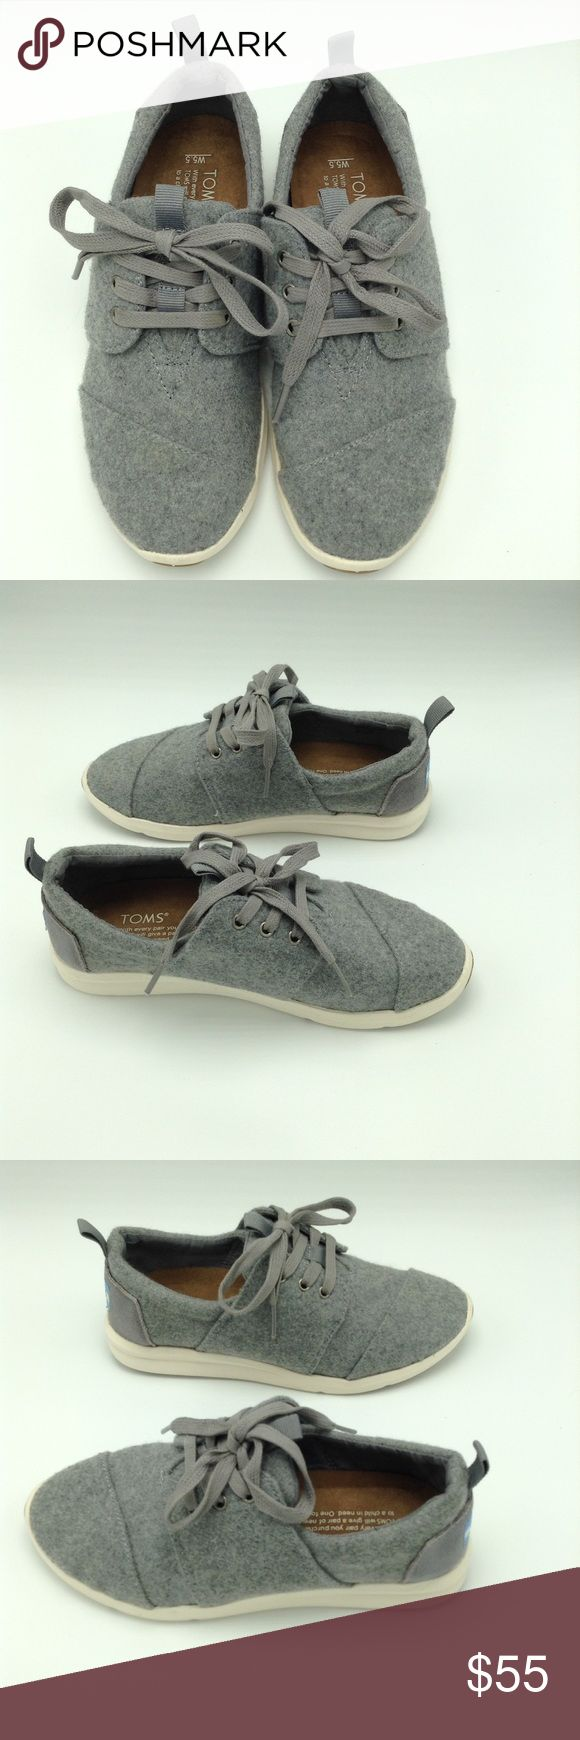 Toms Gray Del Ray Women's Sneakers Size 5.5 NWOT Toms Gray Del Ray Women's sneakers, never worn, size 5.5, NWOT, NWOB Toms Shoes Sneakers